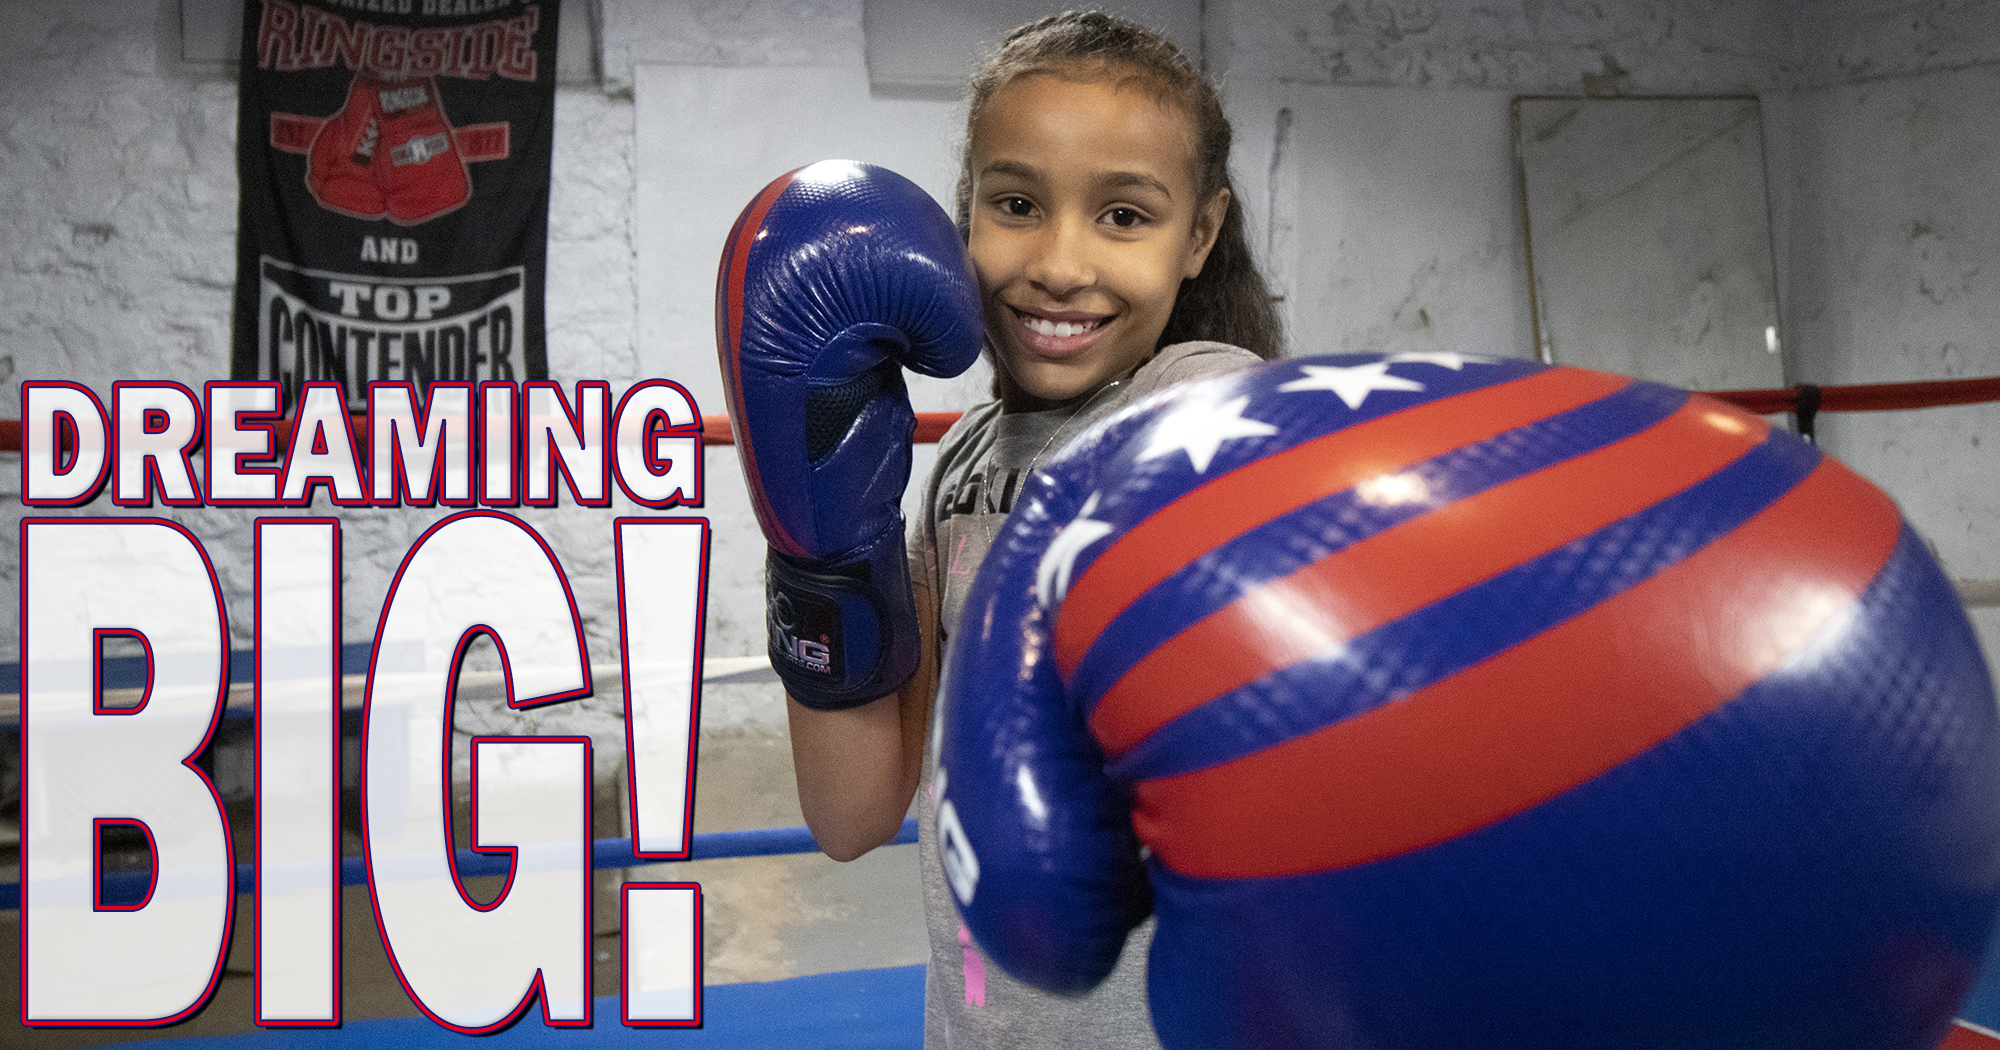 Dreaming Big - Bri Throws A Punch